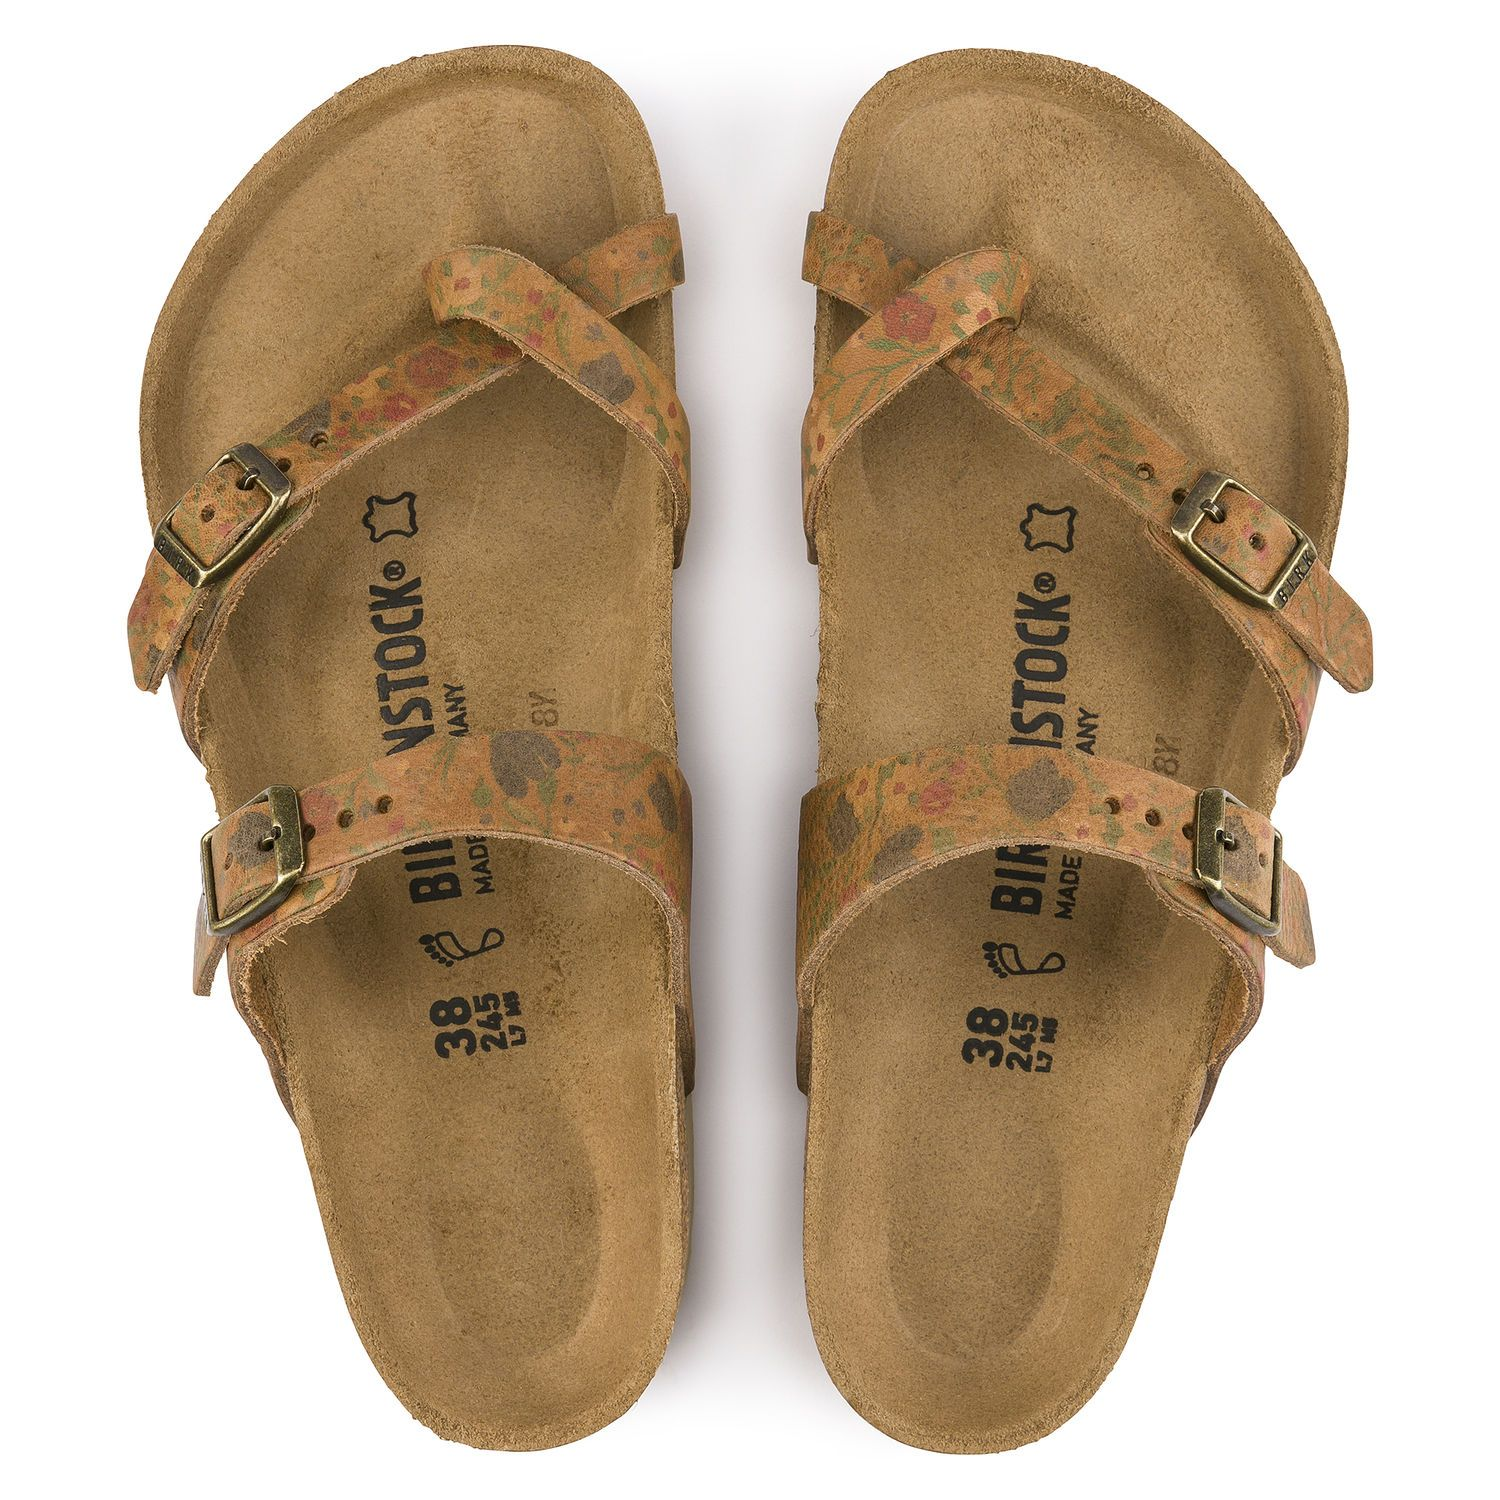 85da0e465a9b525a38dc276874bef8b9 - How Do I Know What Size Birkenstocks To Get